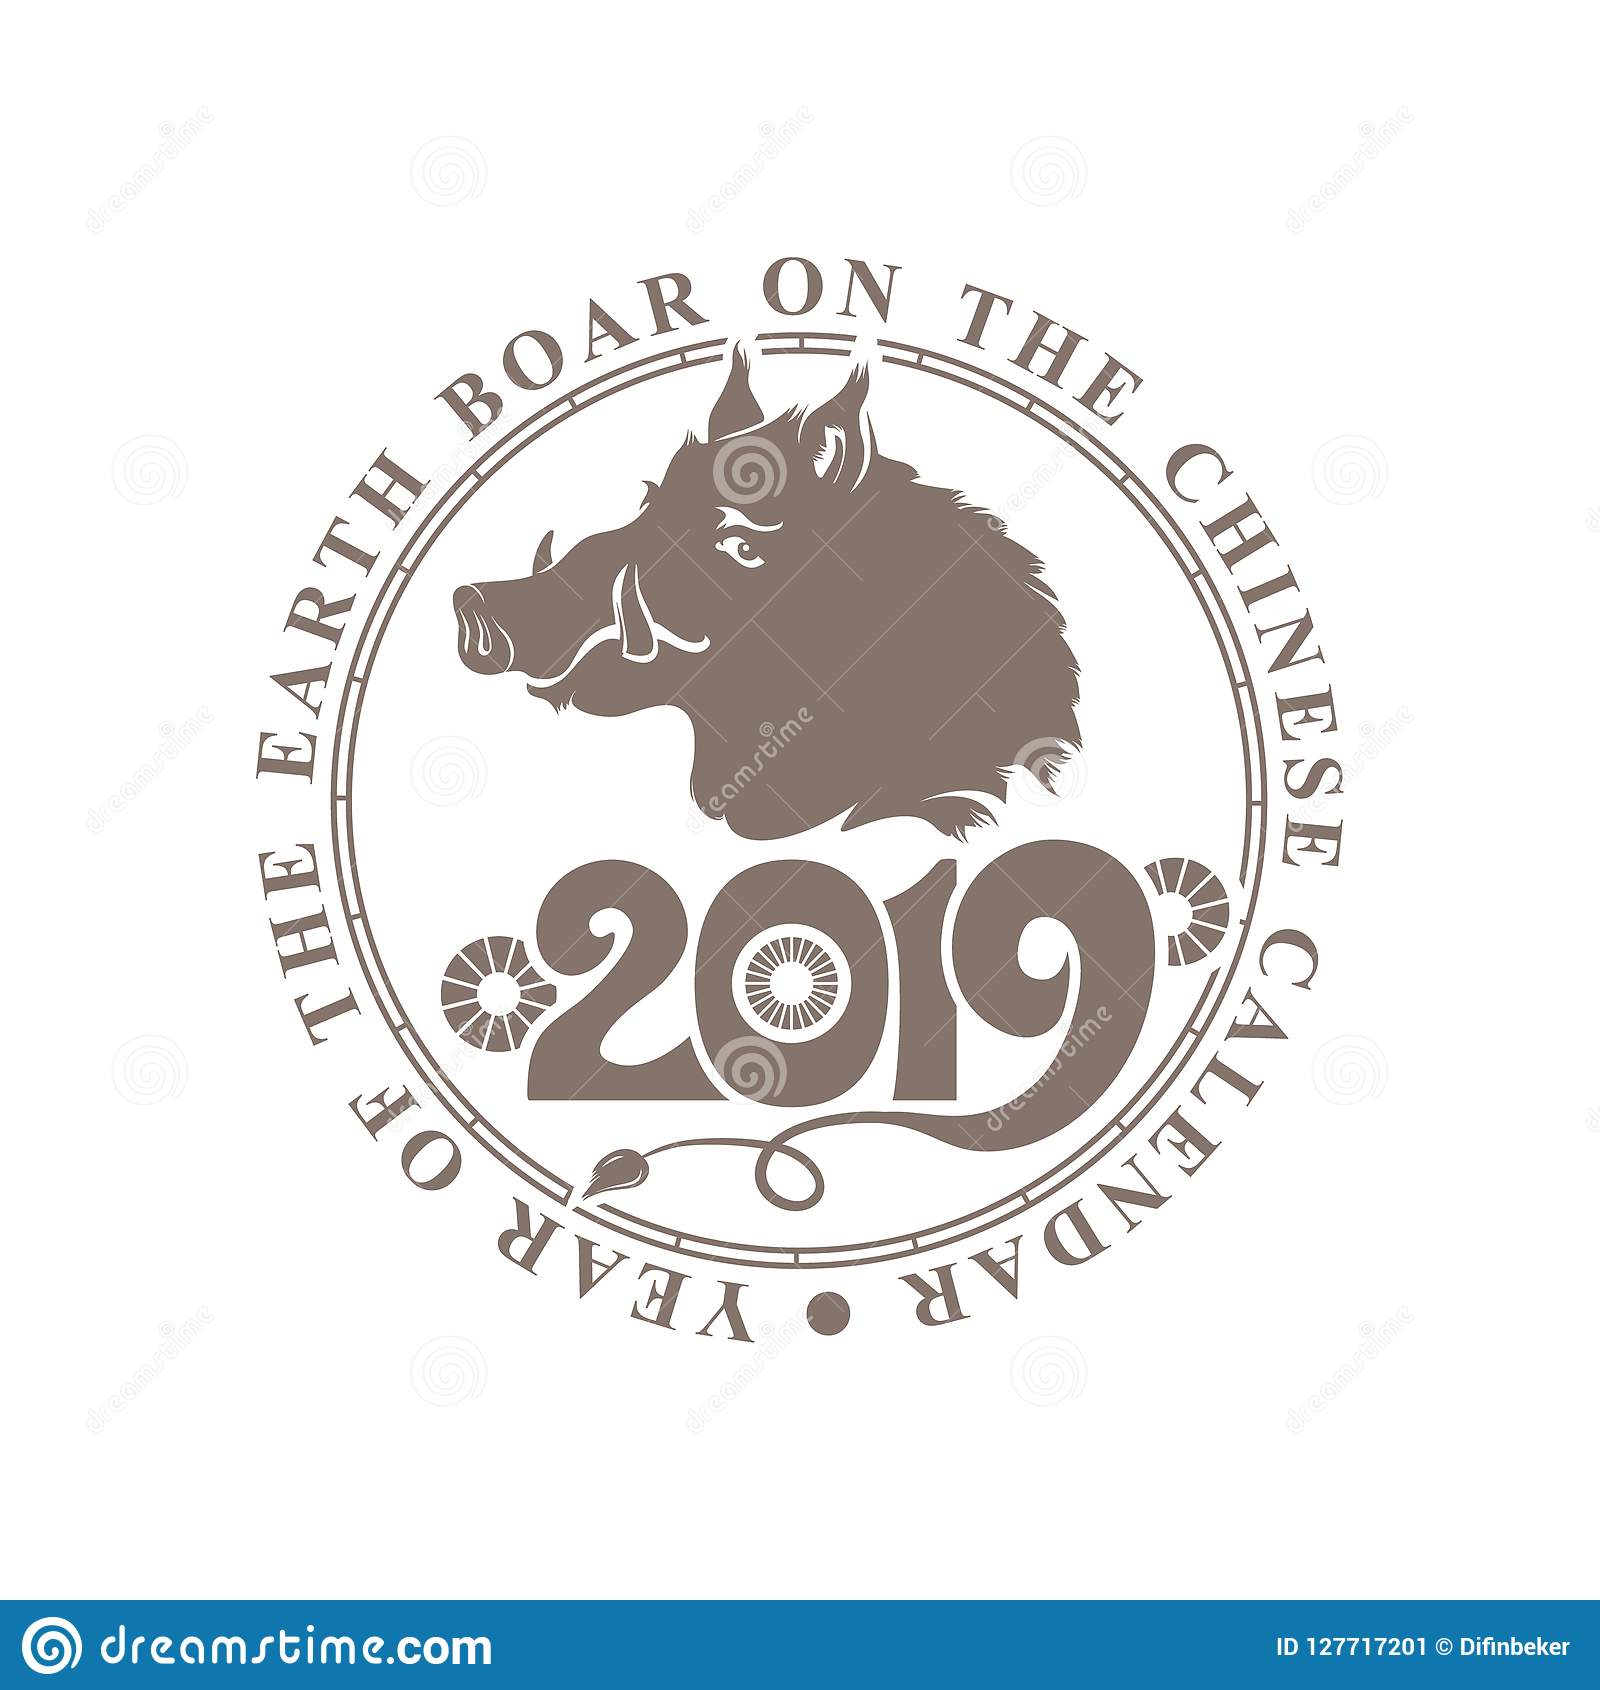 Round Vector Stamp Chinese Zodiac Sign Year Of The Boar Concept Chinese New Year 2019 Stock Illustration Illustration Of Bright Stamp 127717201